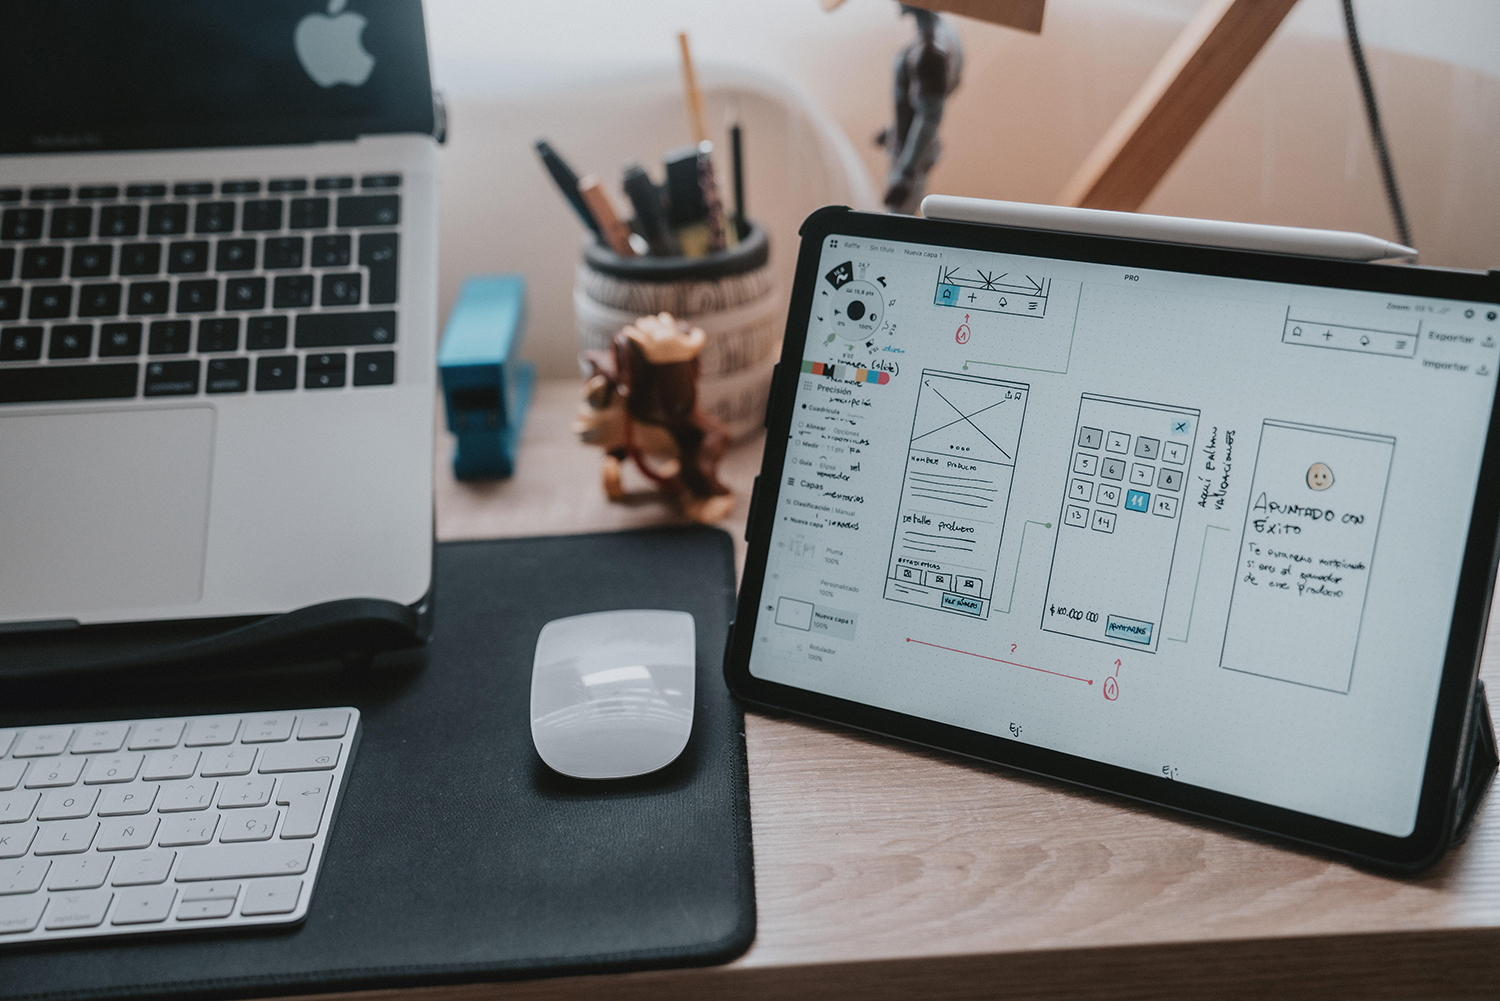 From wireframes to fully designed product, WordPress designer creates a cohesive, modern visuals for your website.